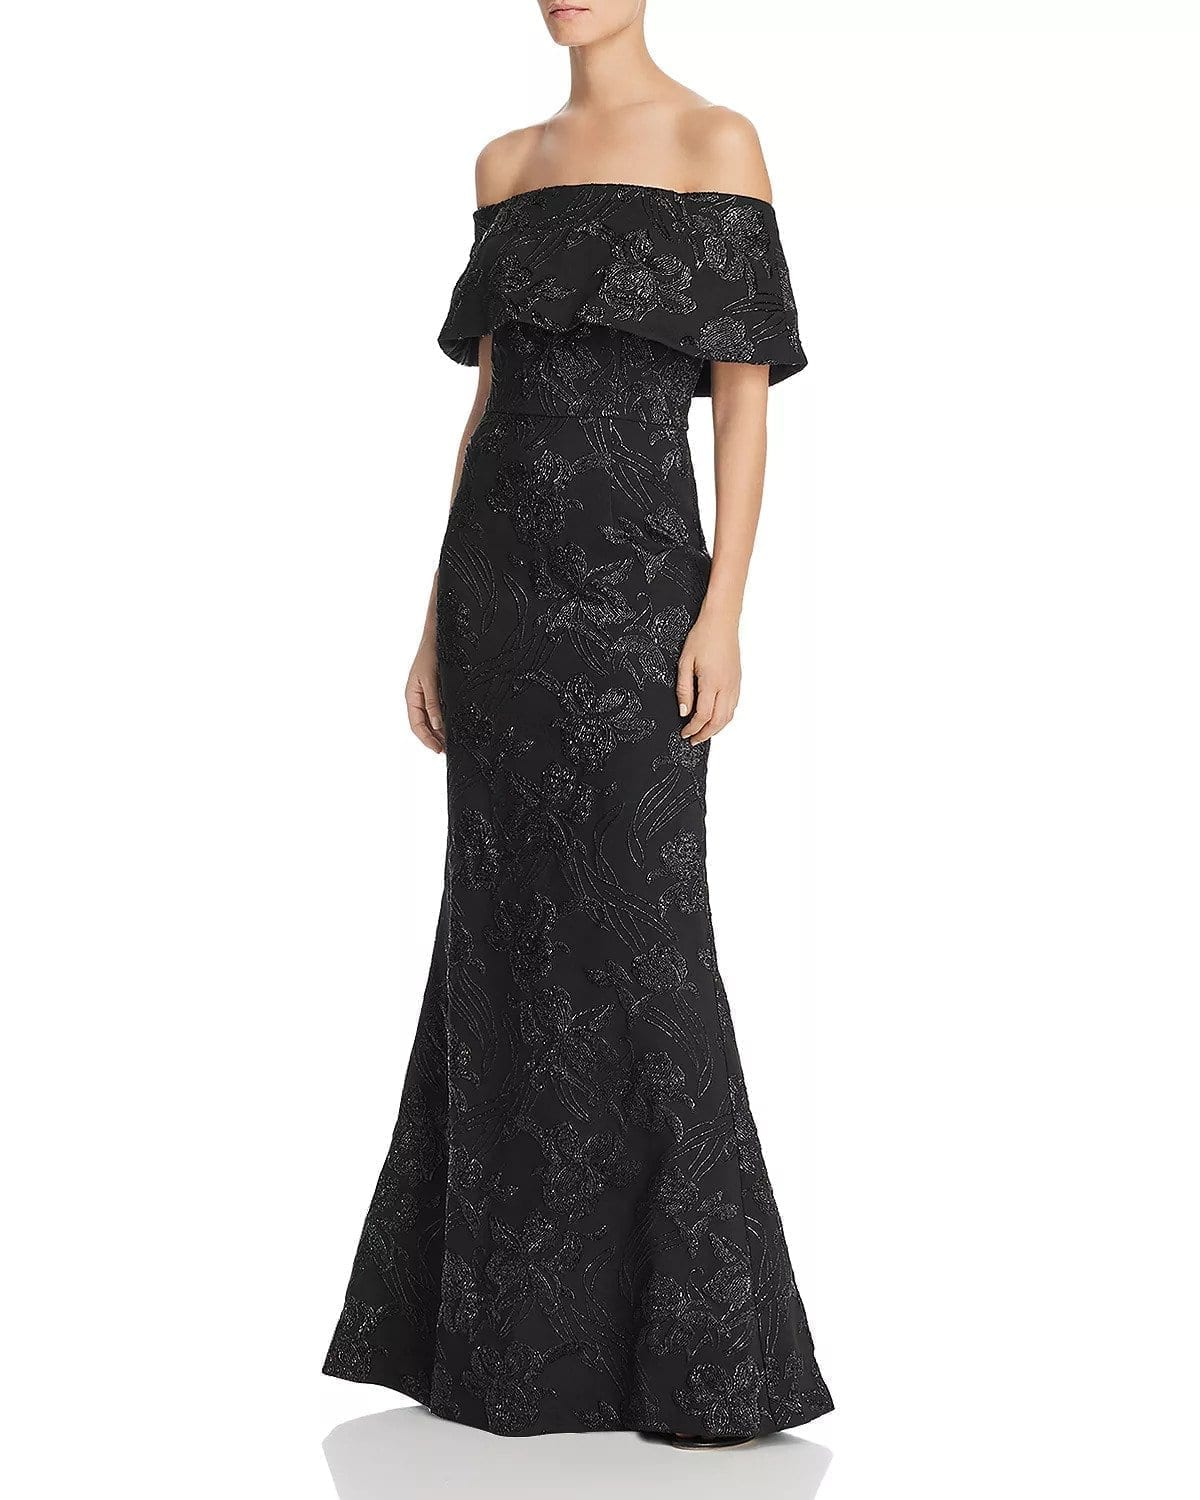 AIDAN MATTOX Off-the-Shoulder Black Gown